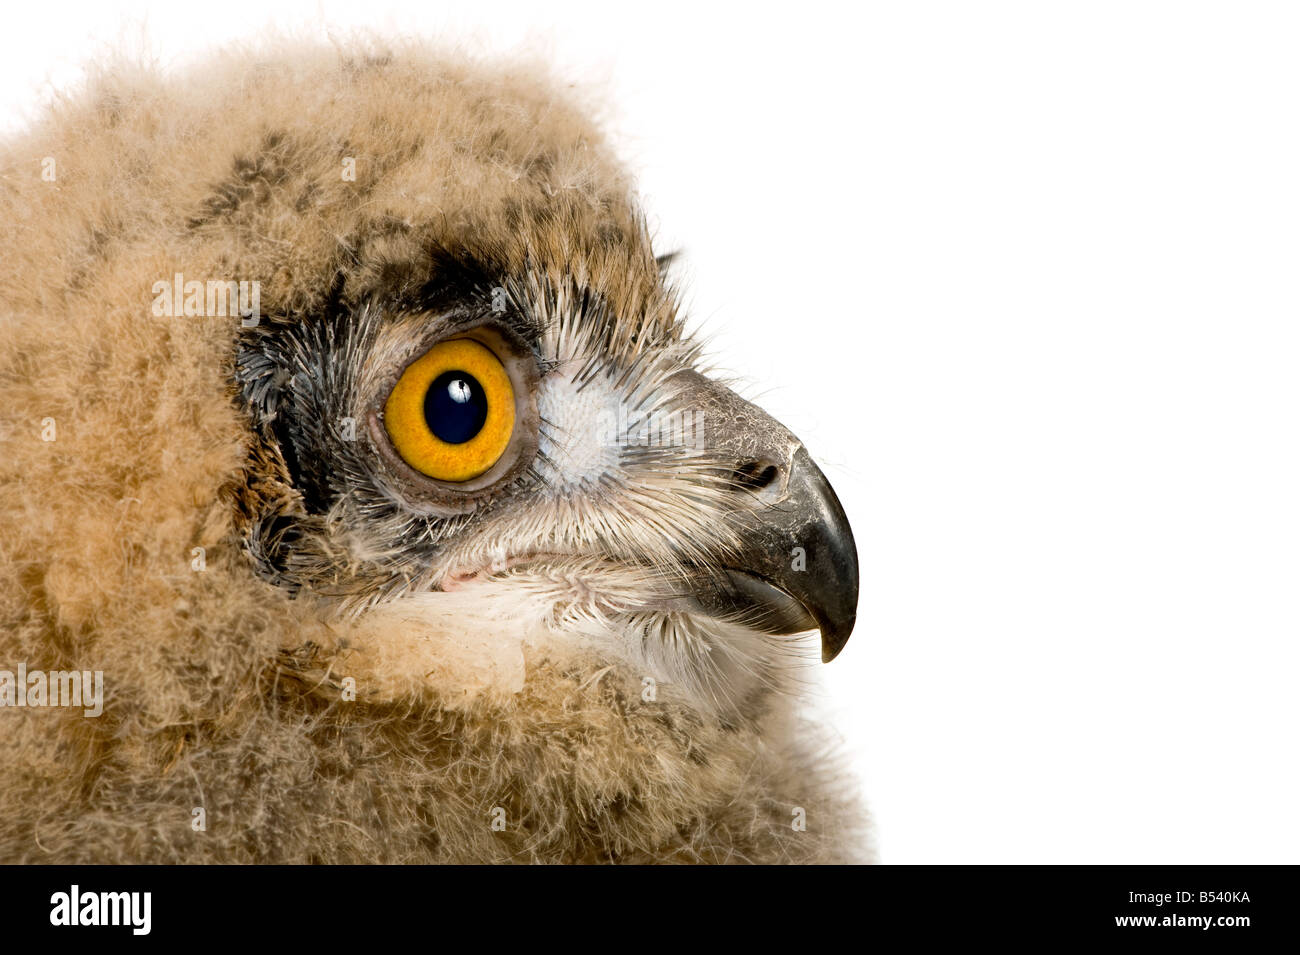 Eurasian Eagle Owl Bubo bubo 6 weeks in front of a white background - Stock Image